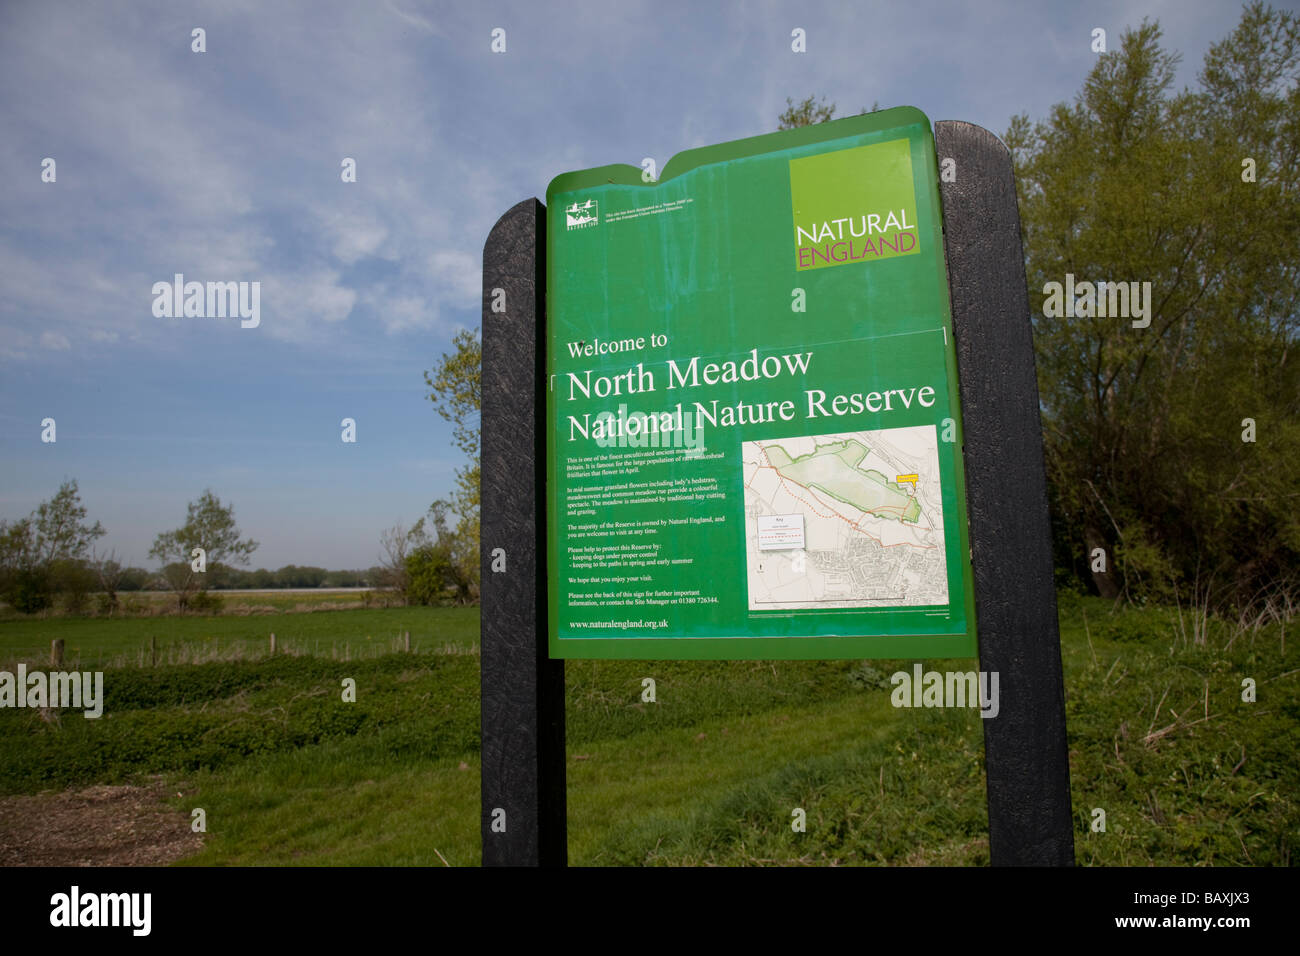 Signboard at North Meadow SSI fritillary reserve Cricklade Wiltshire UK - Stock Image